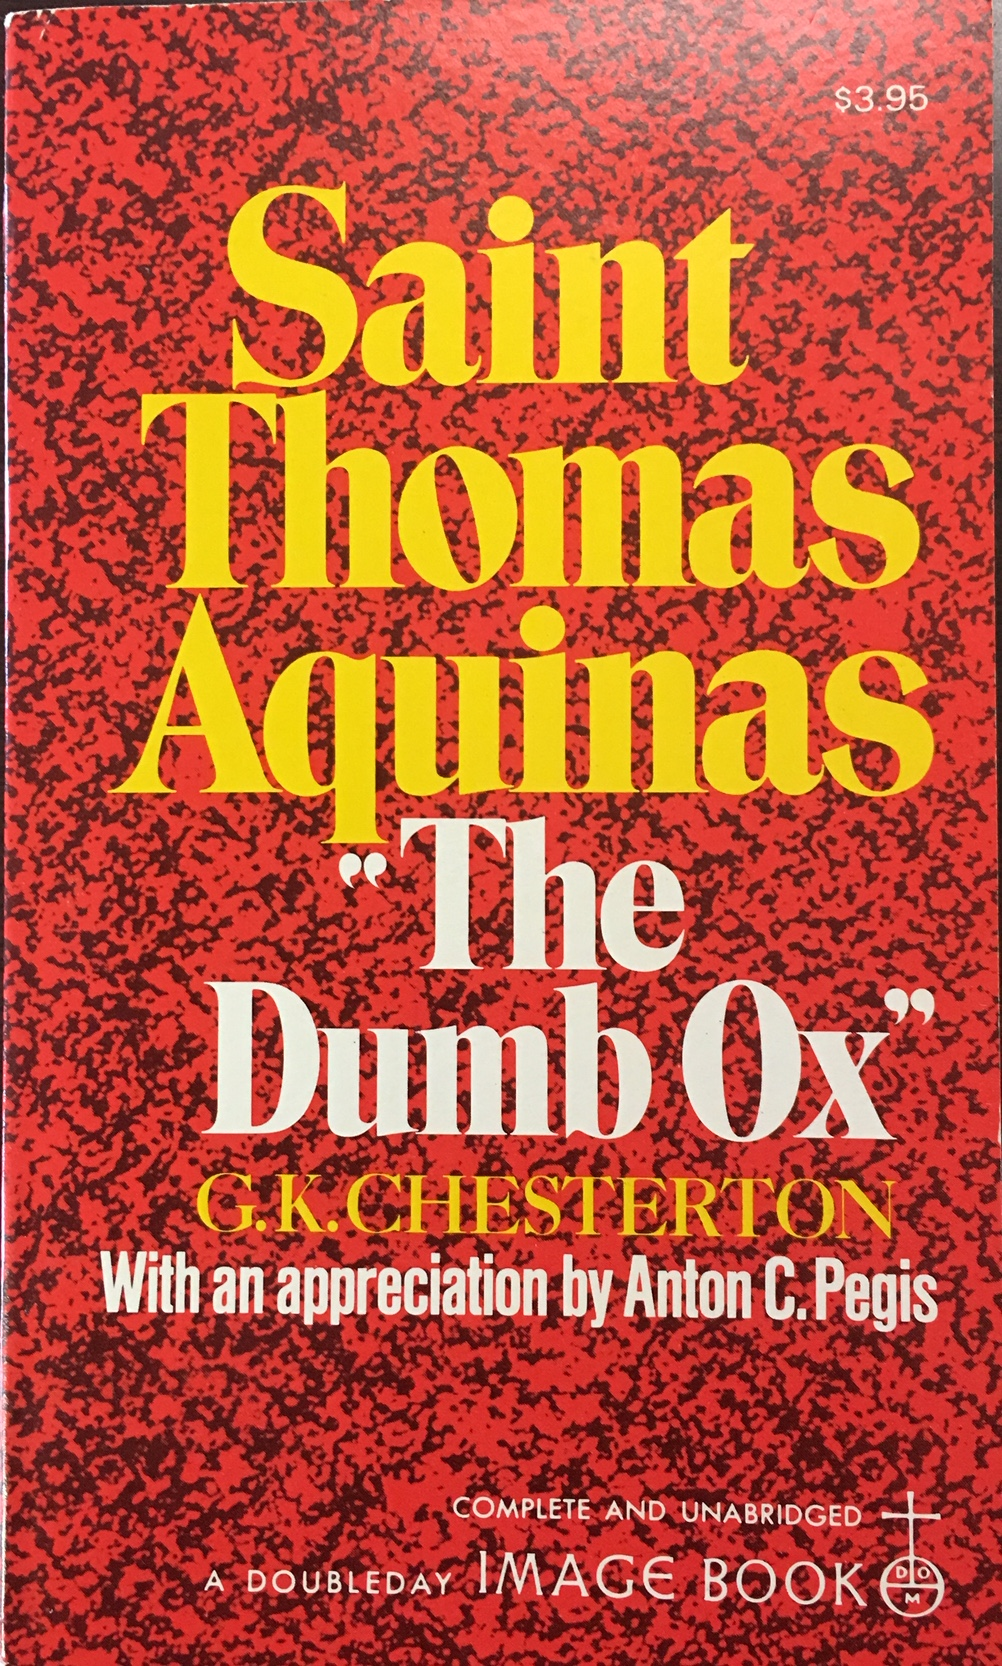 Image for Saint Thomas Aquinas (The Dumb Ox)